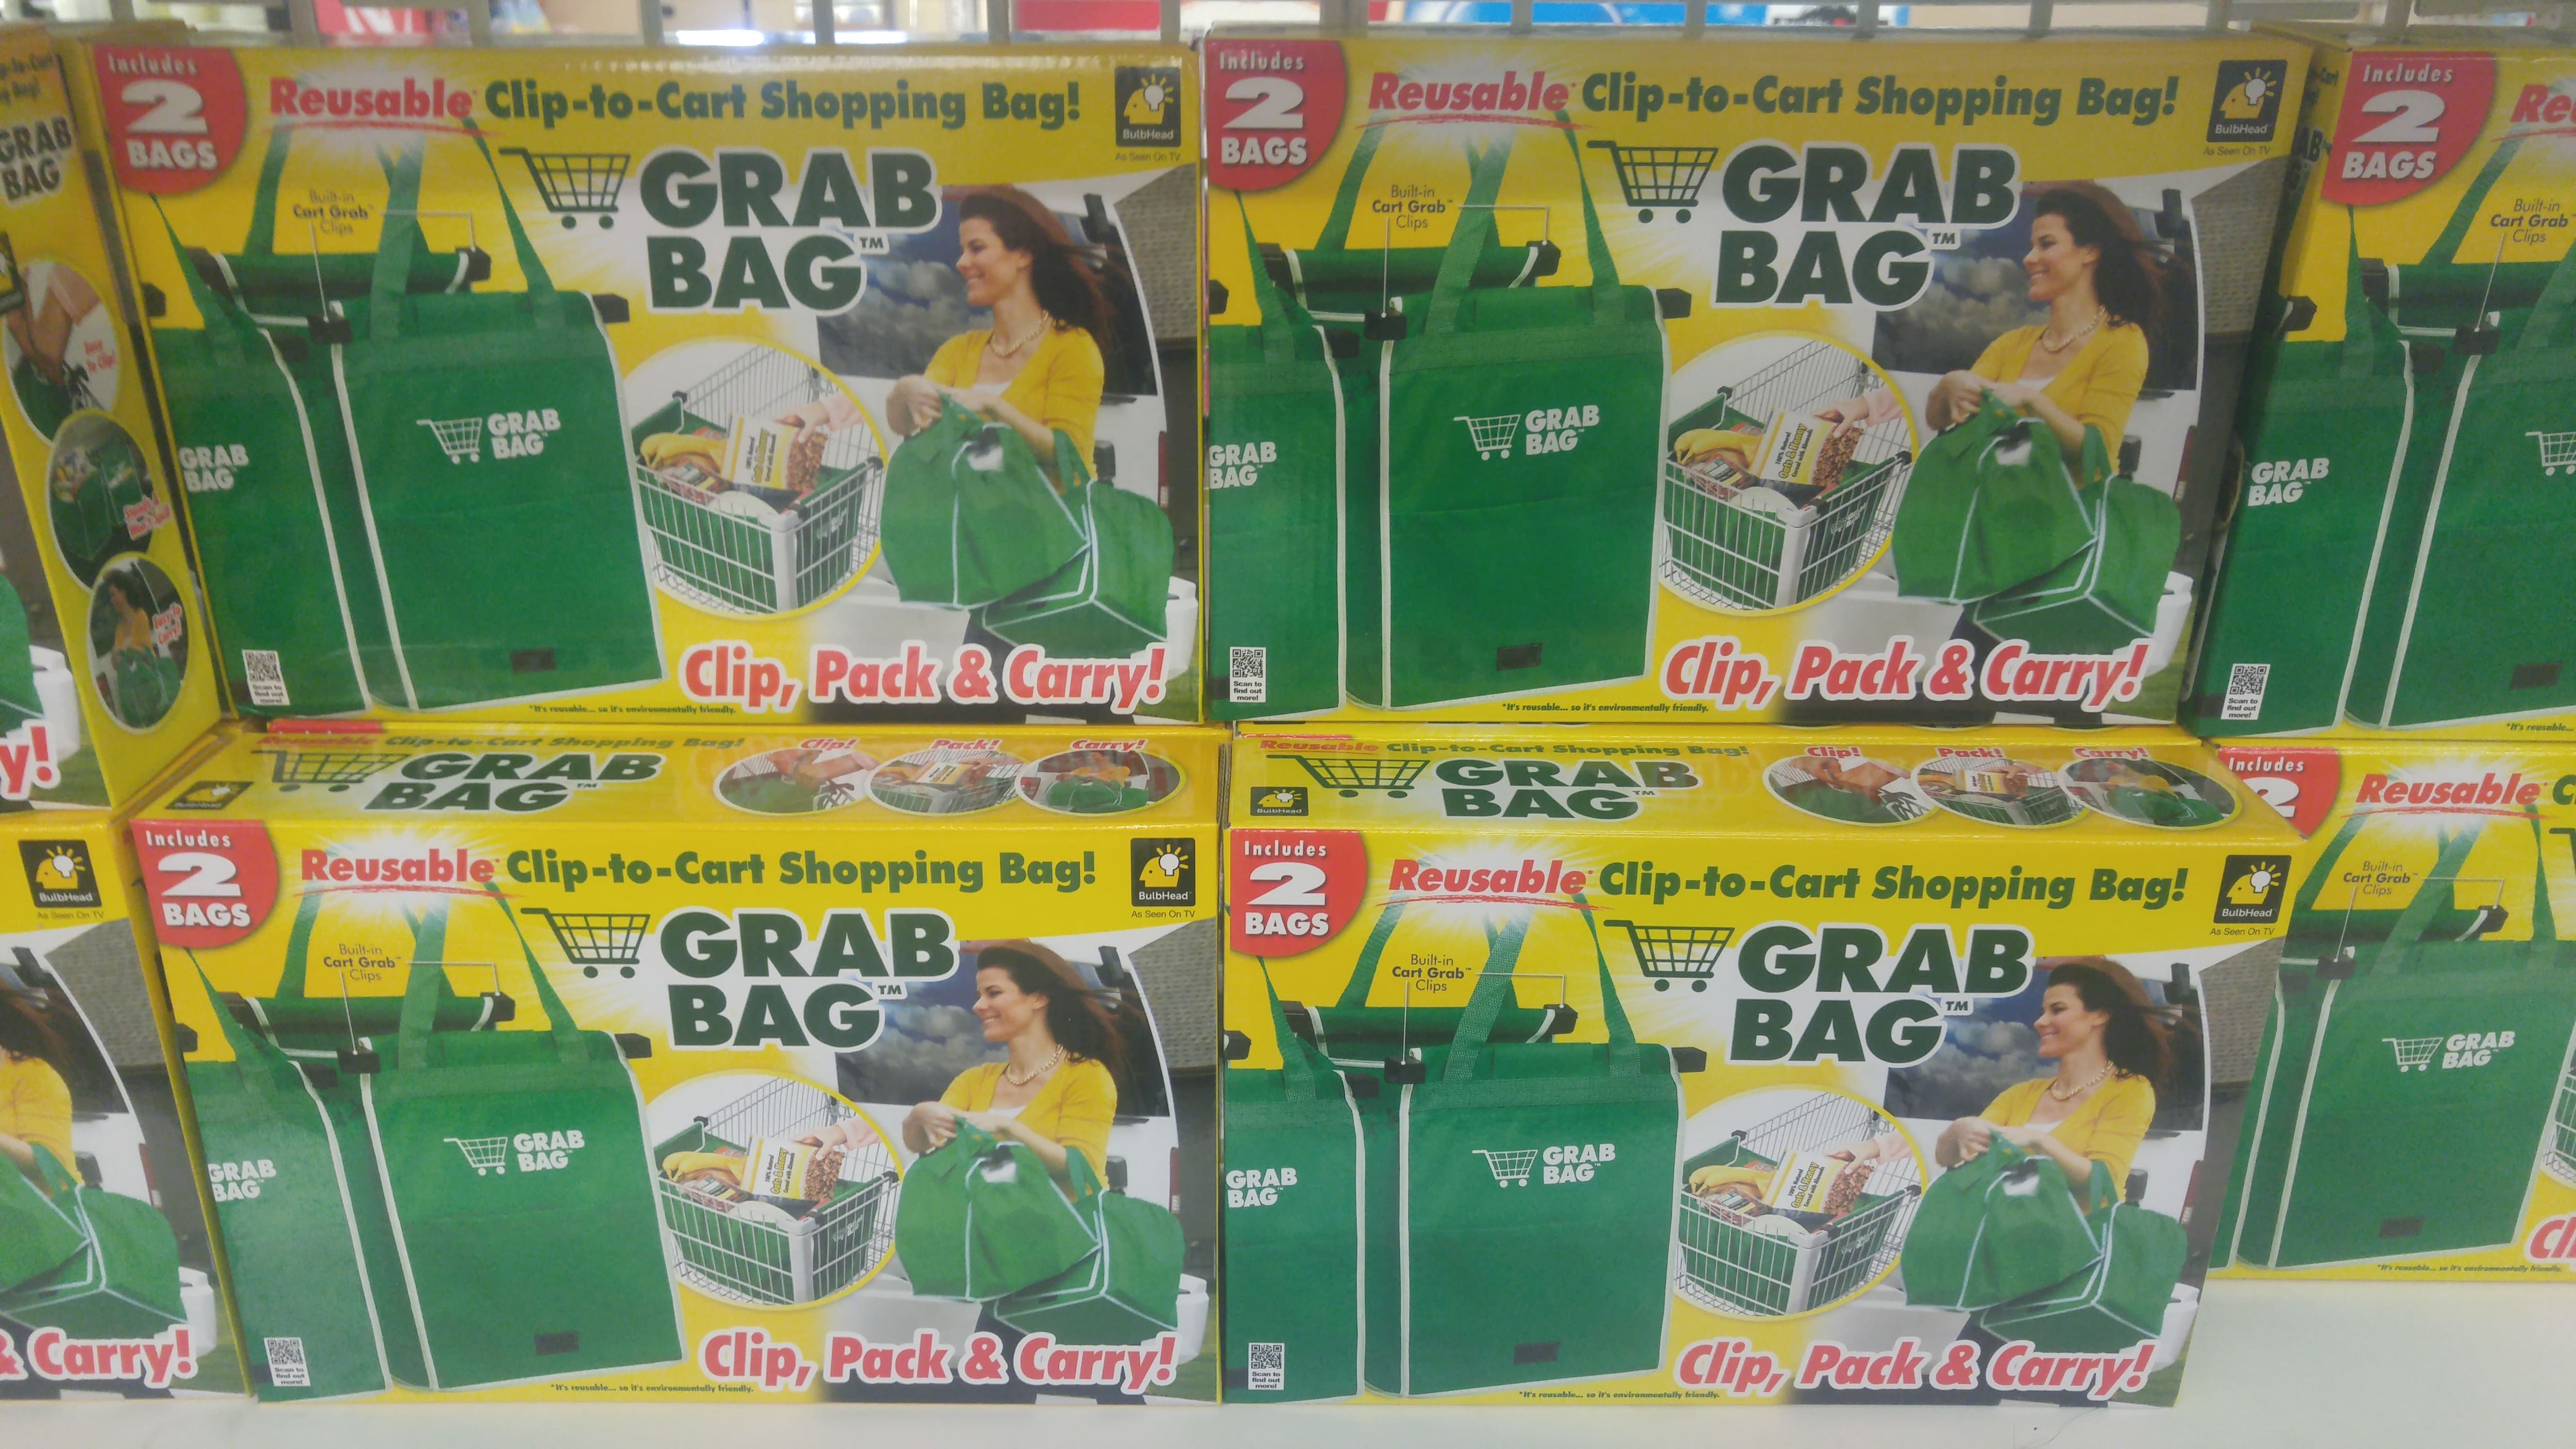 As Seen On TV Grab Bag Reusable Shopping Bags at Dollar Tree. B&M  YMMV $1.00